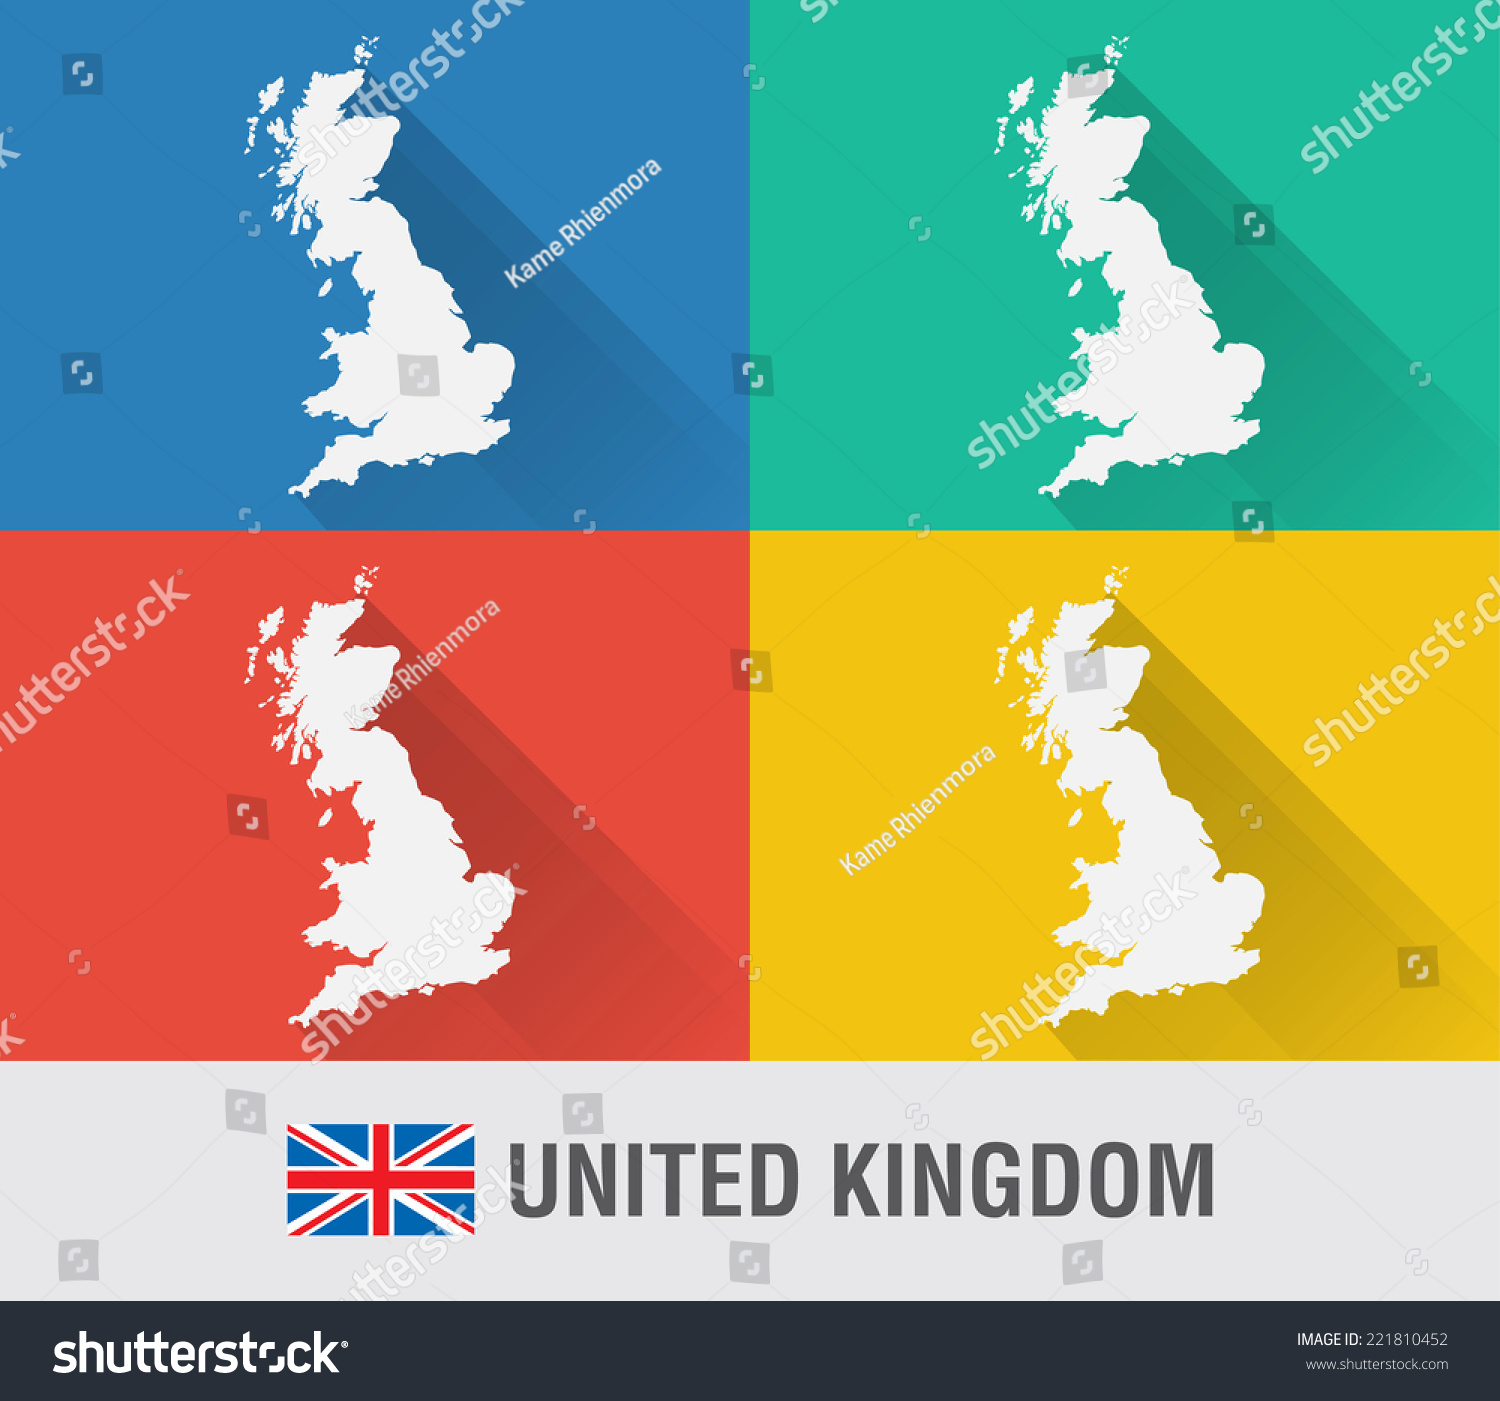 Uk england world map flat style stock vector 2018 221810452 uk england world map in flat style with 4 colors modern map design gumiabroncs Images